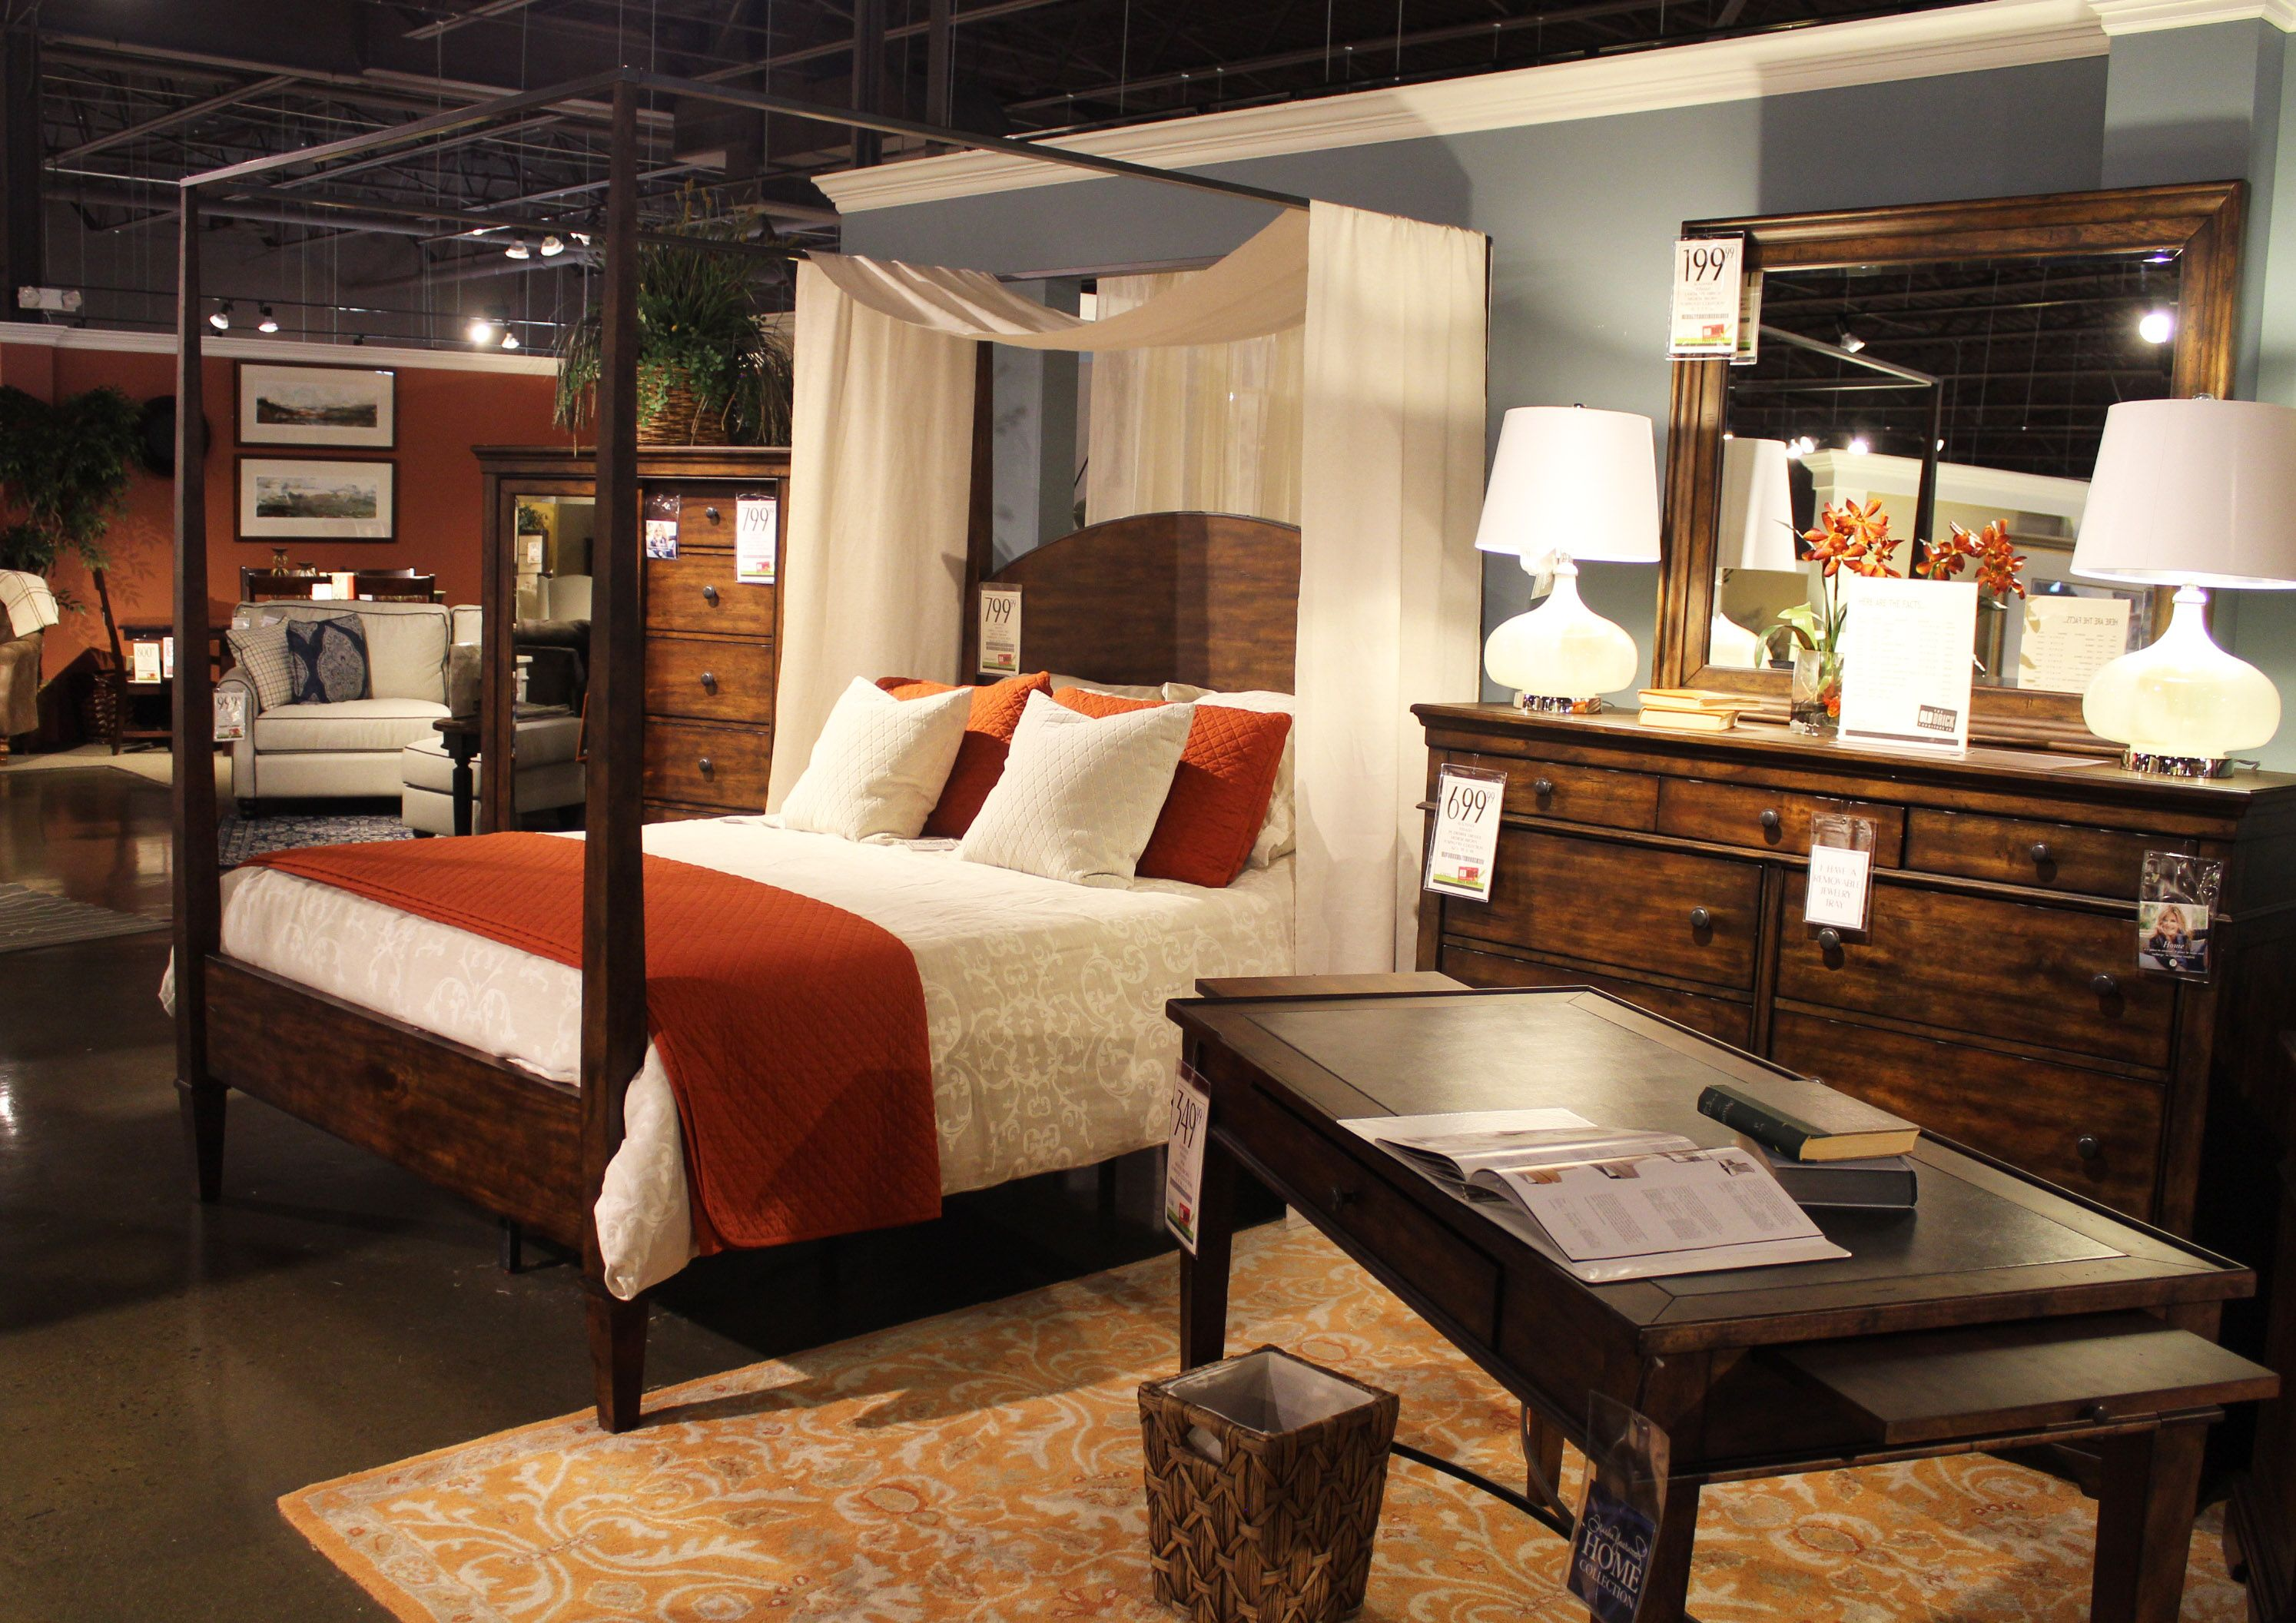 New Canopy Bed From Trisha Yearwood Home Collection At Old Brick Furniture.